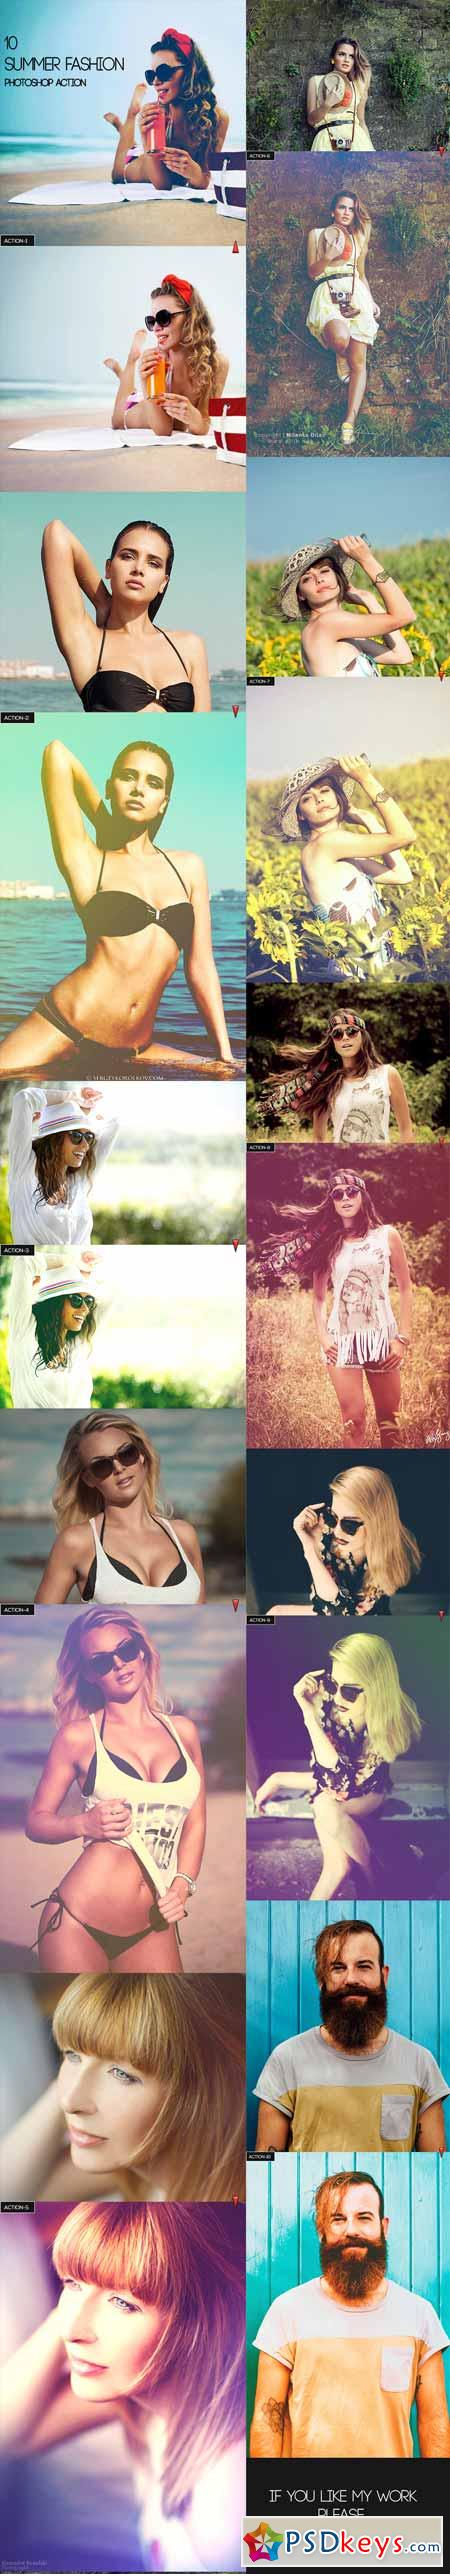 10 Summer Fashion 11814798